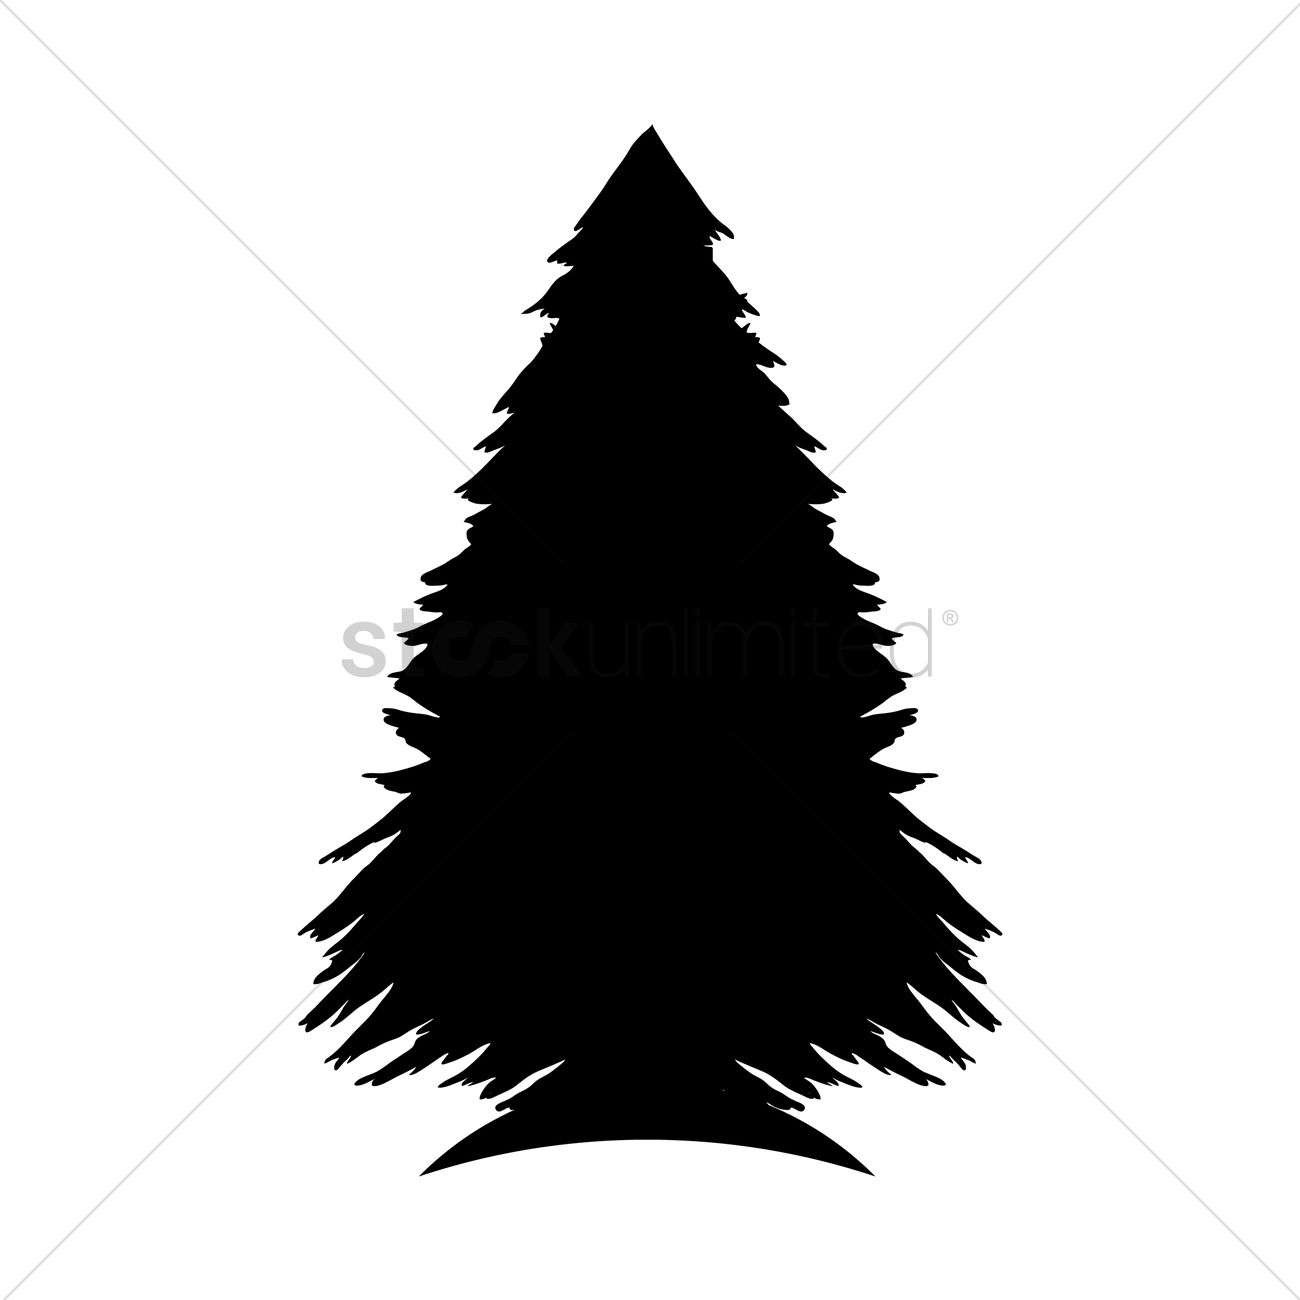 pine tree silhouette vector image 1903000 stockunlimited rh stockunlimited com pine tree vector graphic pine tree graphic images